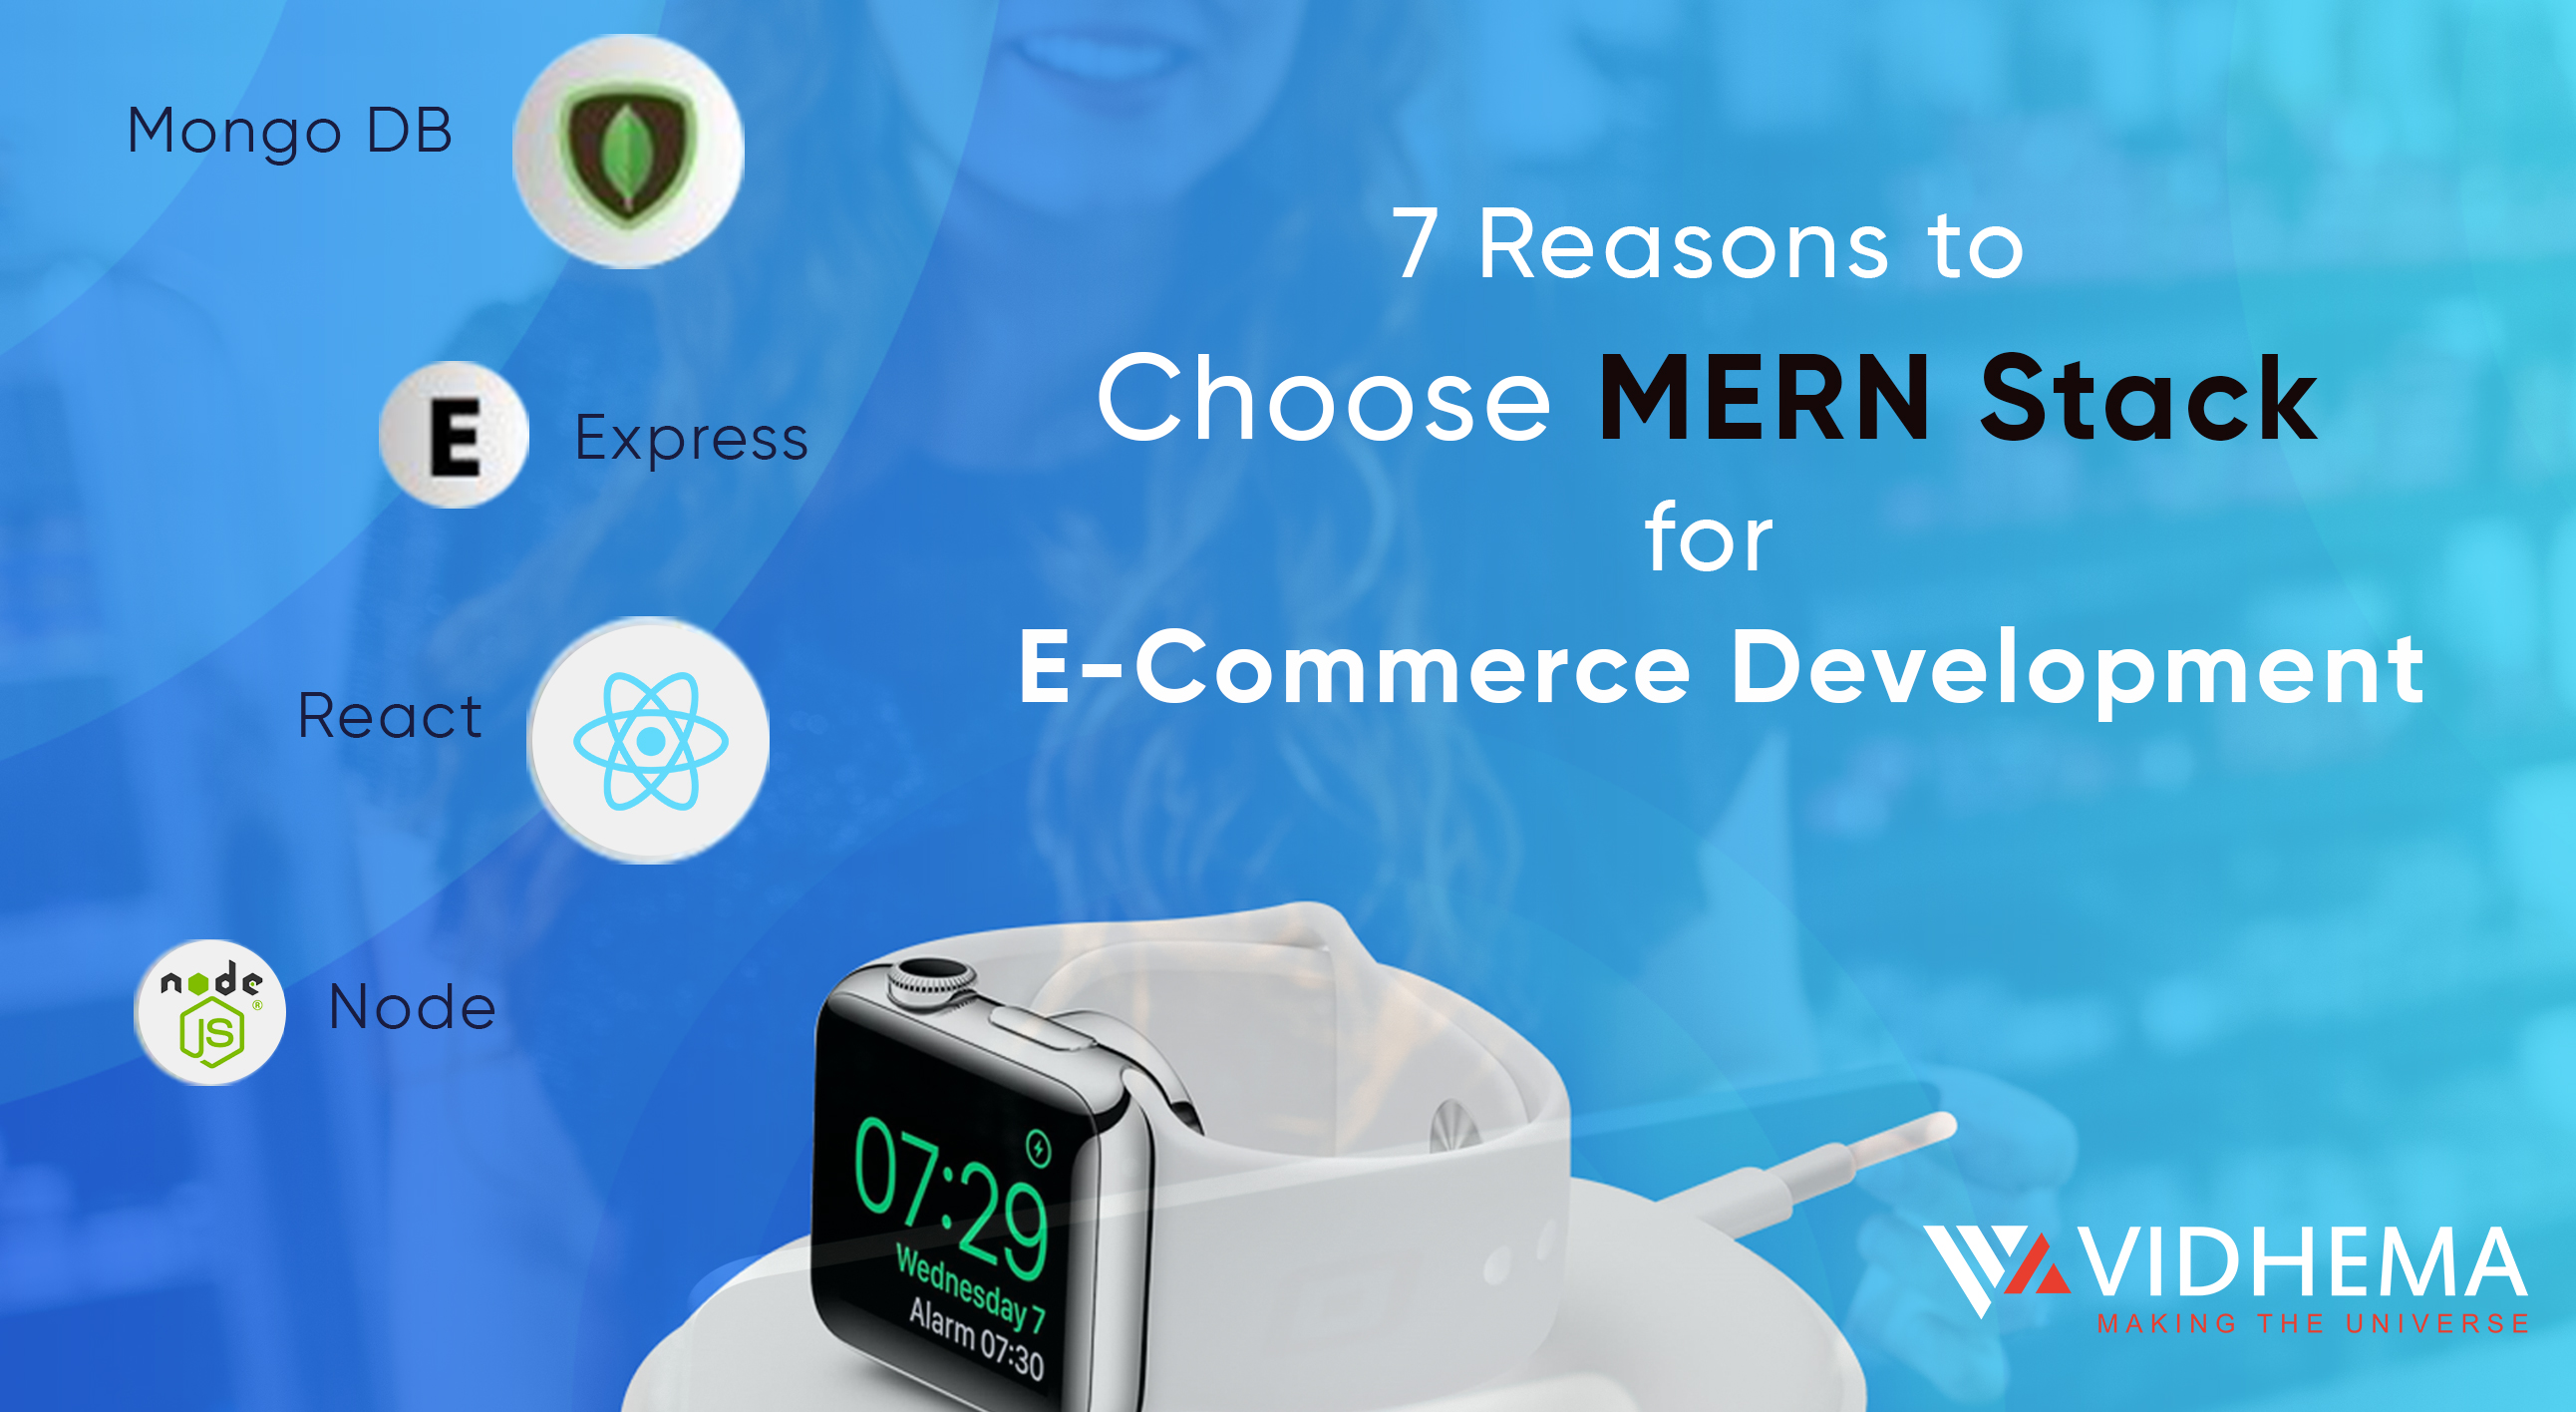 7 Reasons to Choose MERN Stack for E-Commerce Development